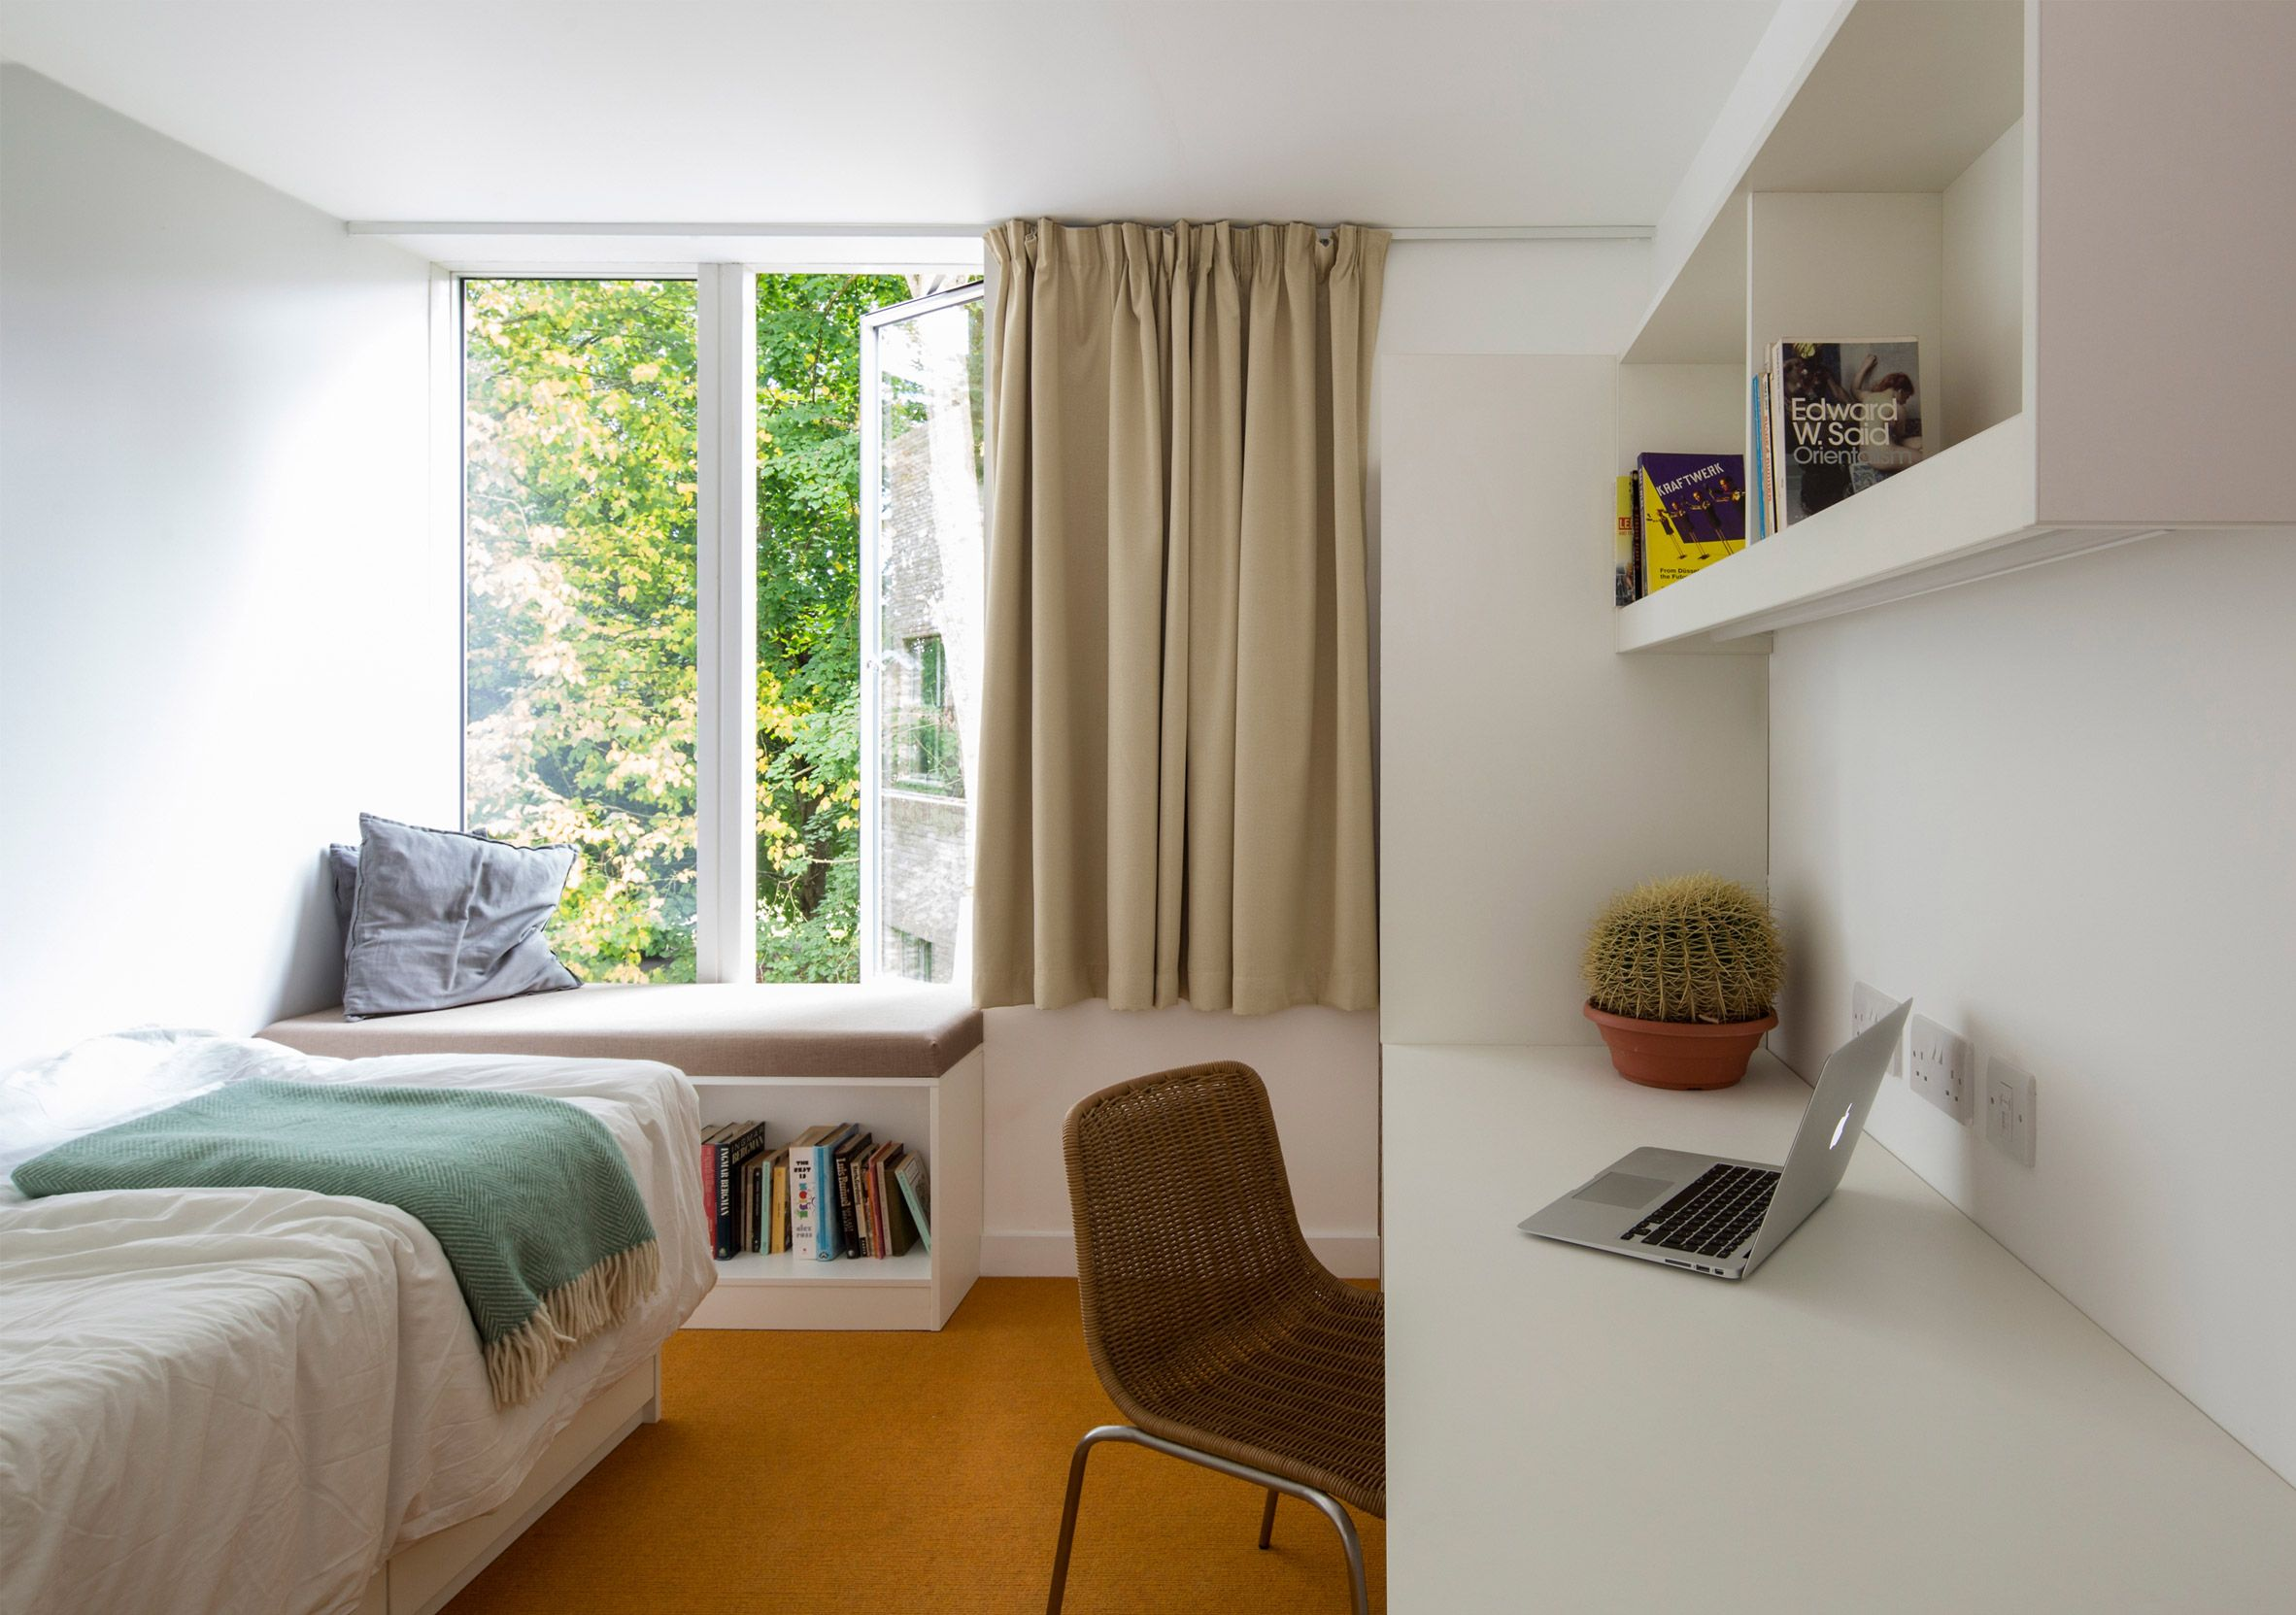 Bed against the window  the ensuite bedrooms feature coloured flooring that stands out